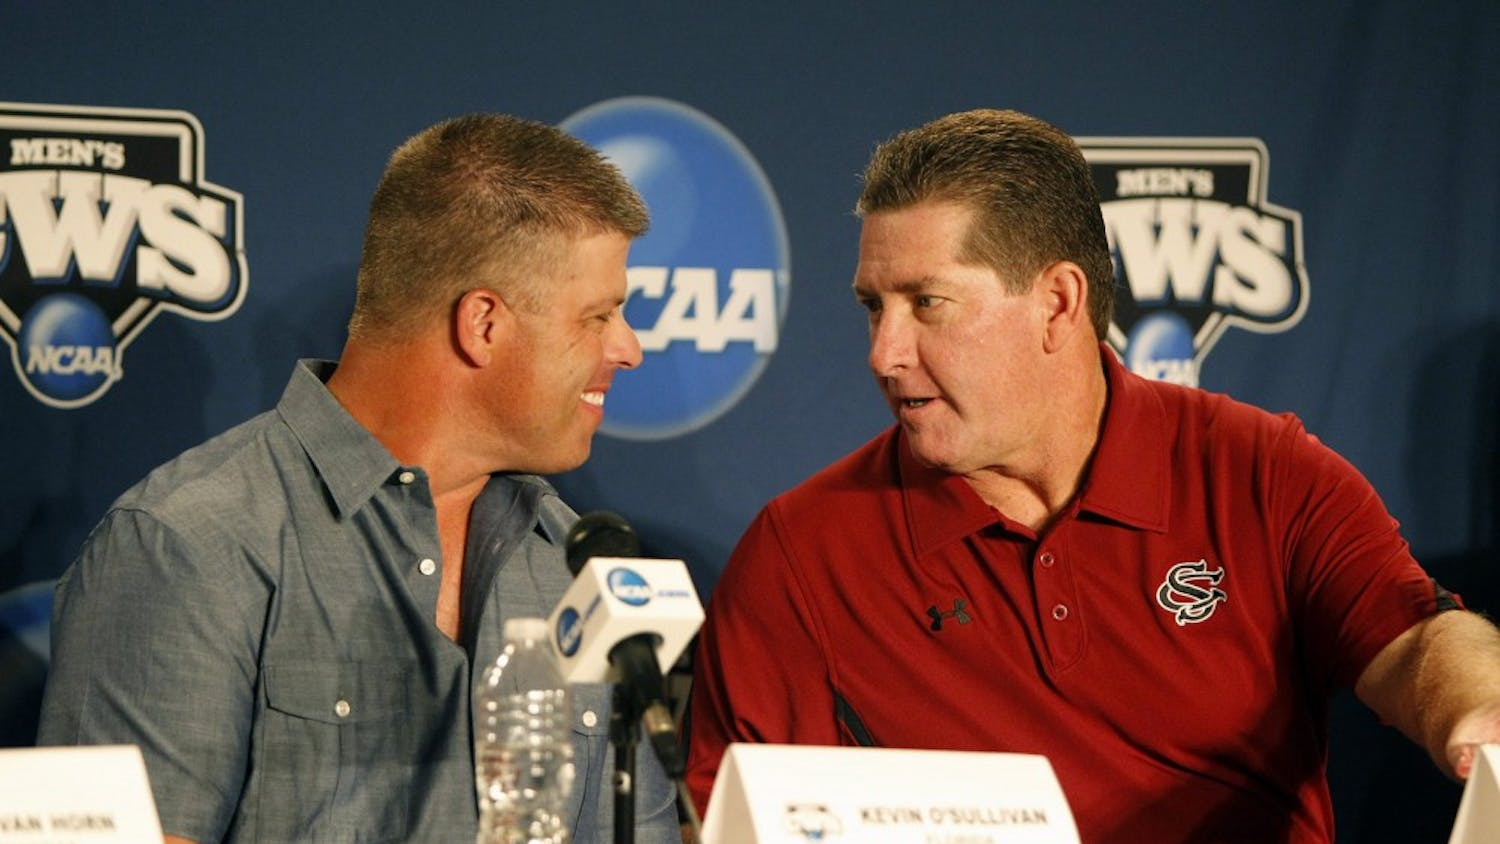 Florida head coach Kevin O'Sullivan, left, and South Carolina head coach Ray Tanner chat prior to a press conference in preparation for the College World Series at TD Ameritrade Park in Omaha, Nebraska, Thursday, June 14, 2012. (Gerry Melendez/The State/MCT)